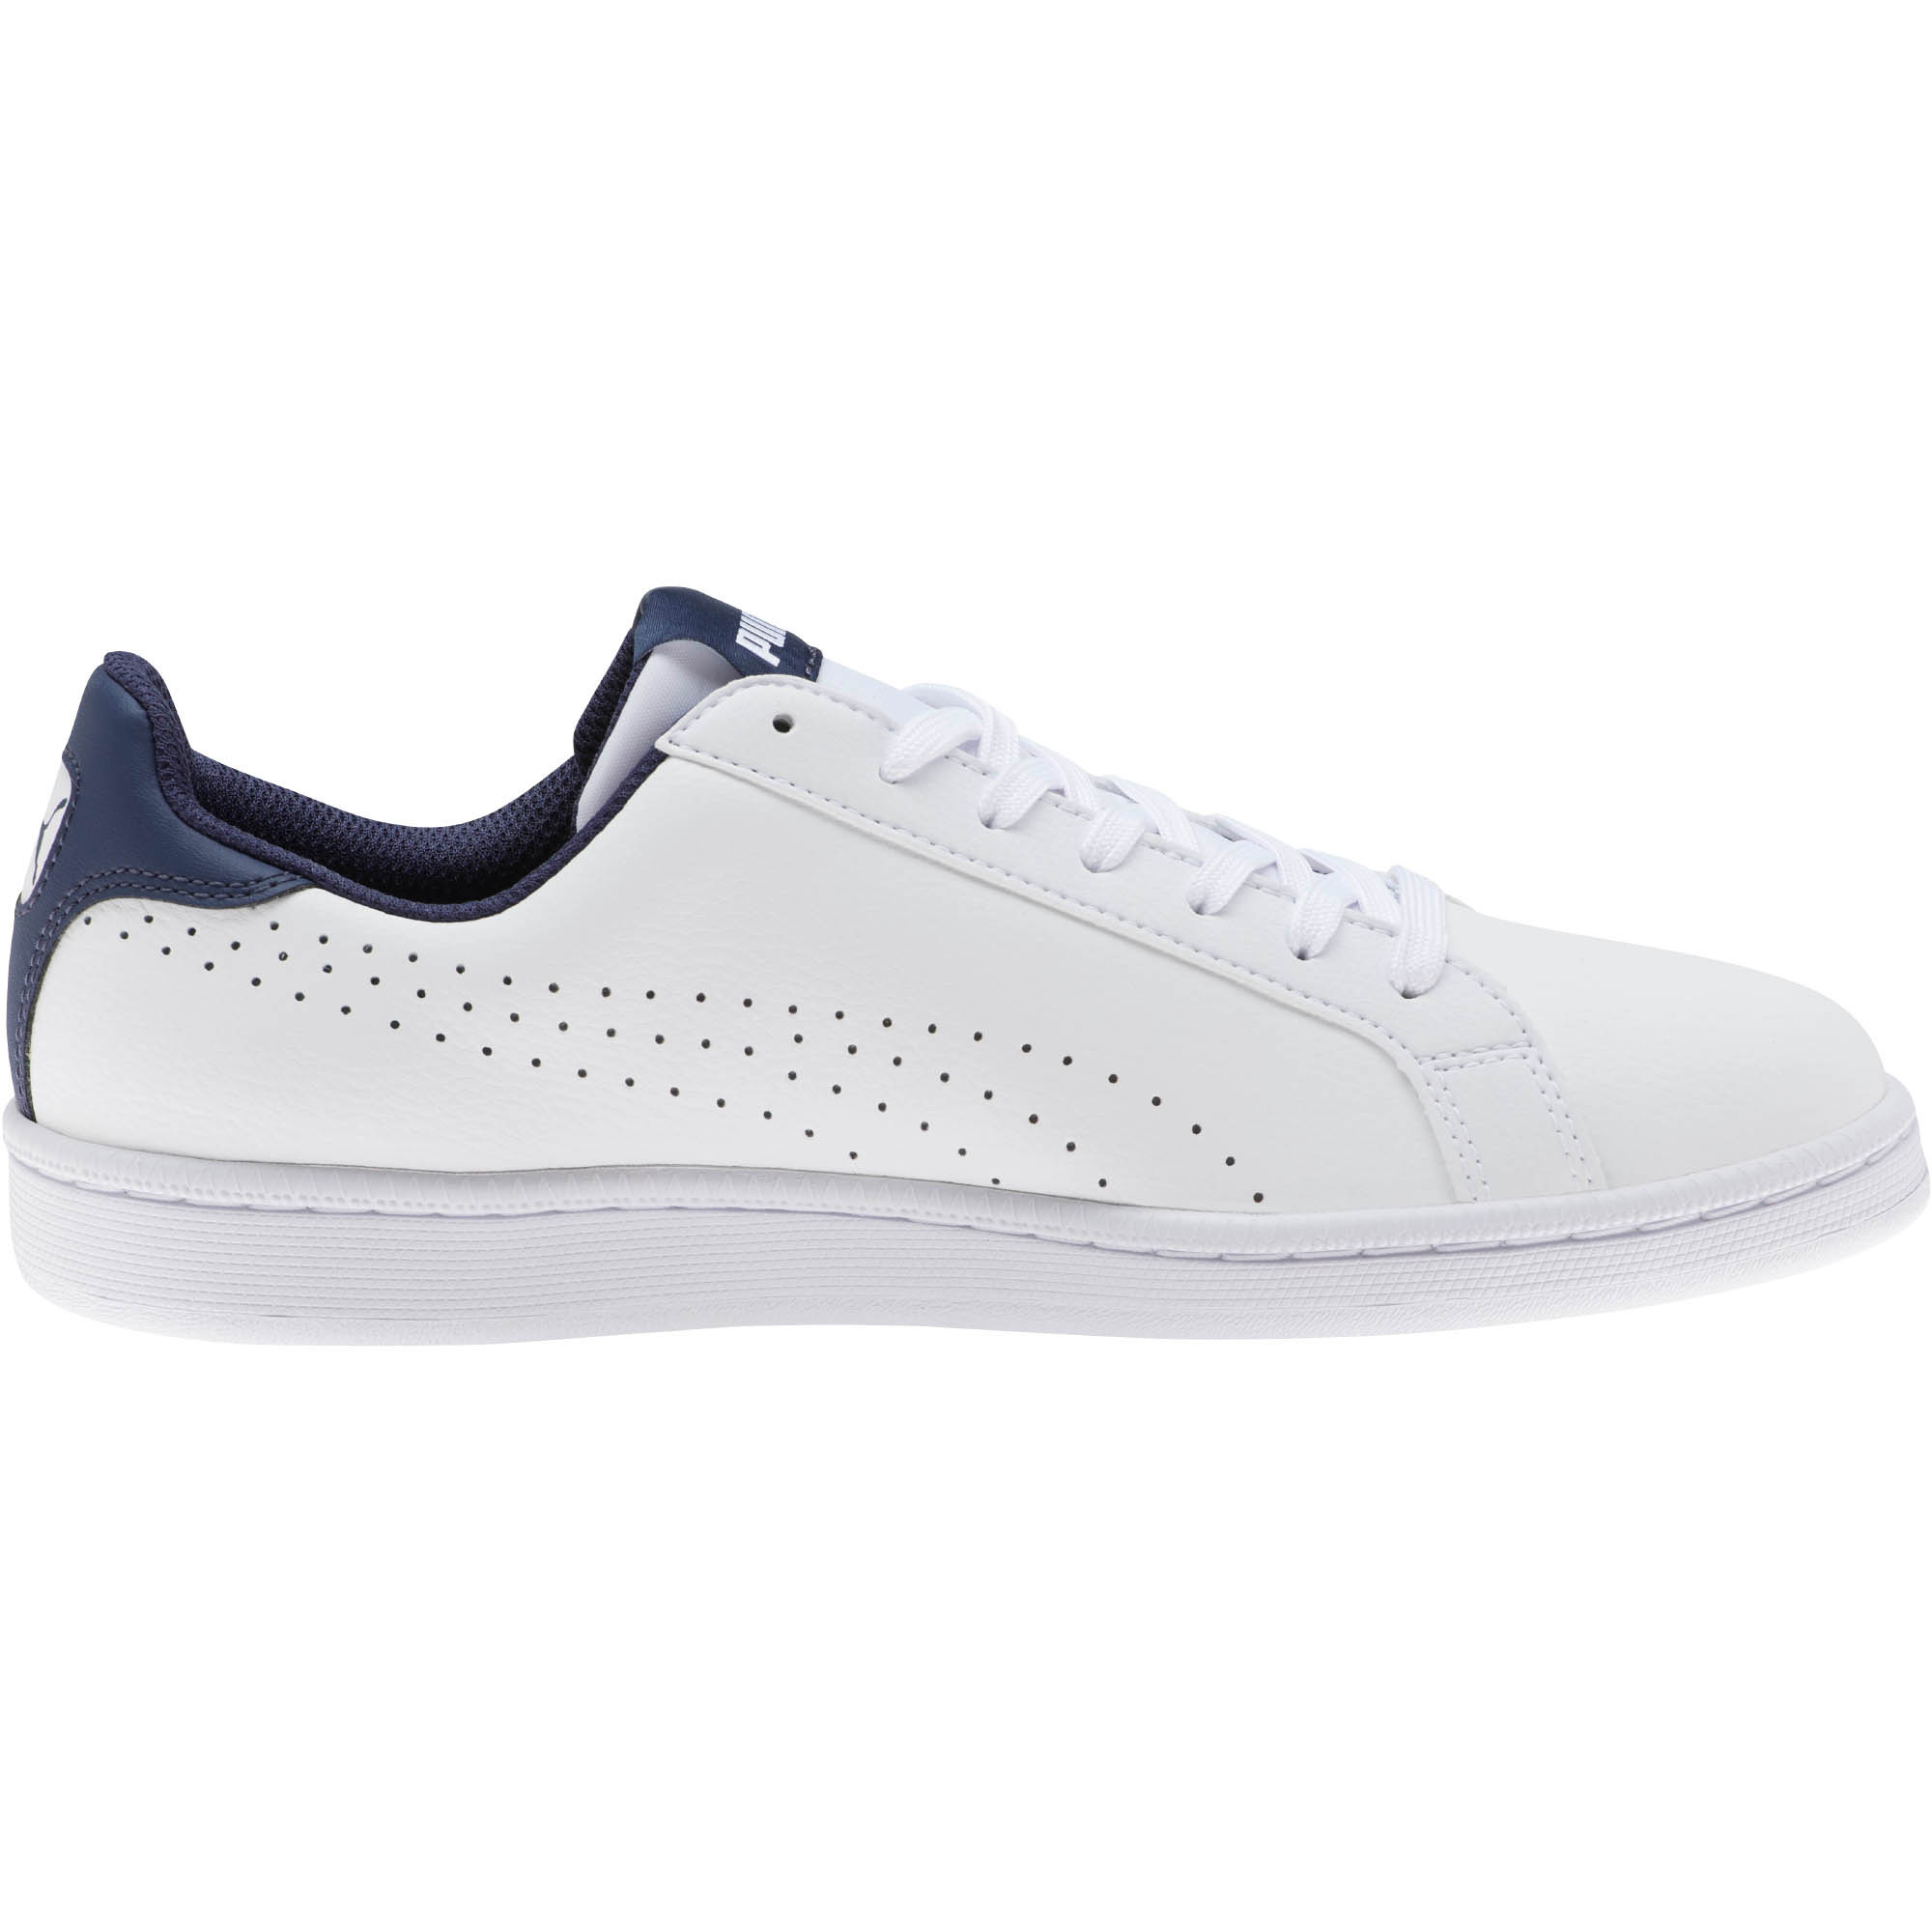 PUMA-PUMA-Smash-Perf-Men-039-s-Sneakers-Men-Shoe-Basics thumbnail 5